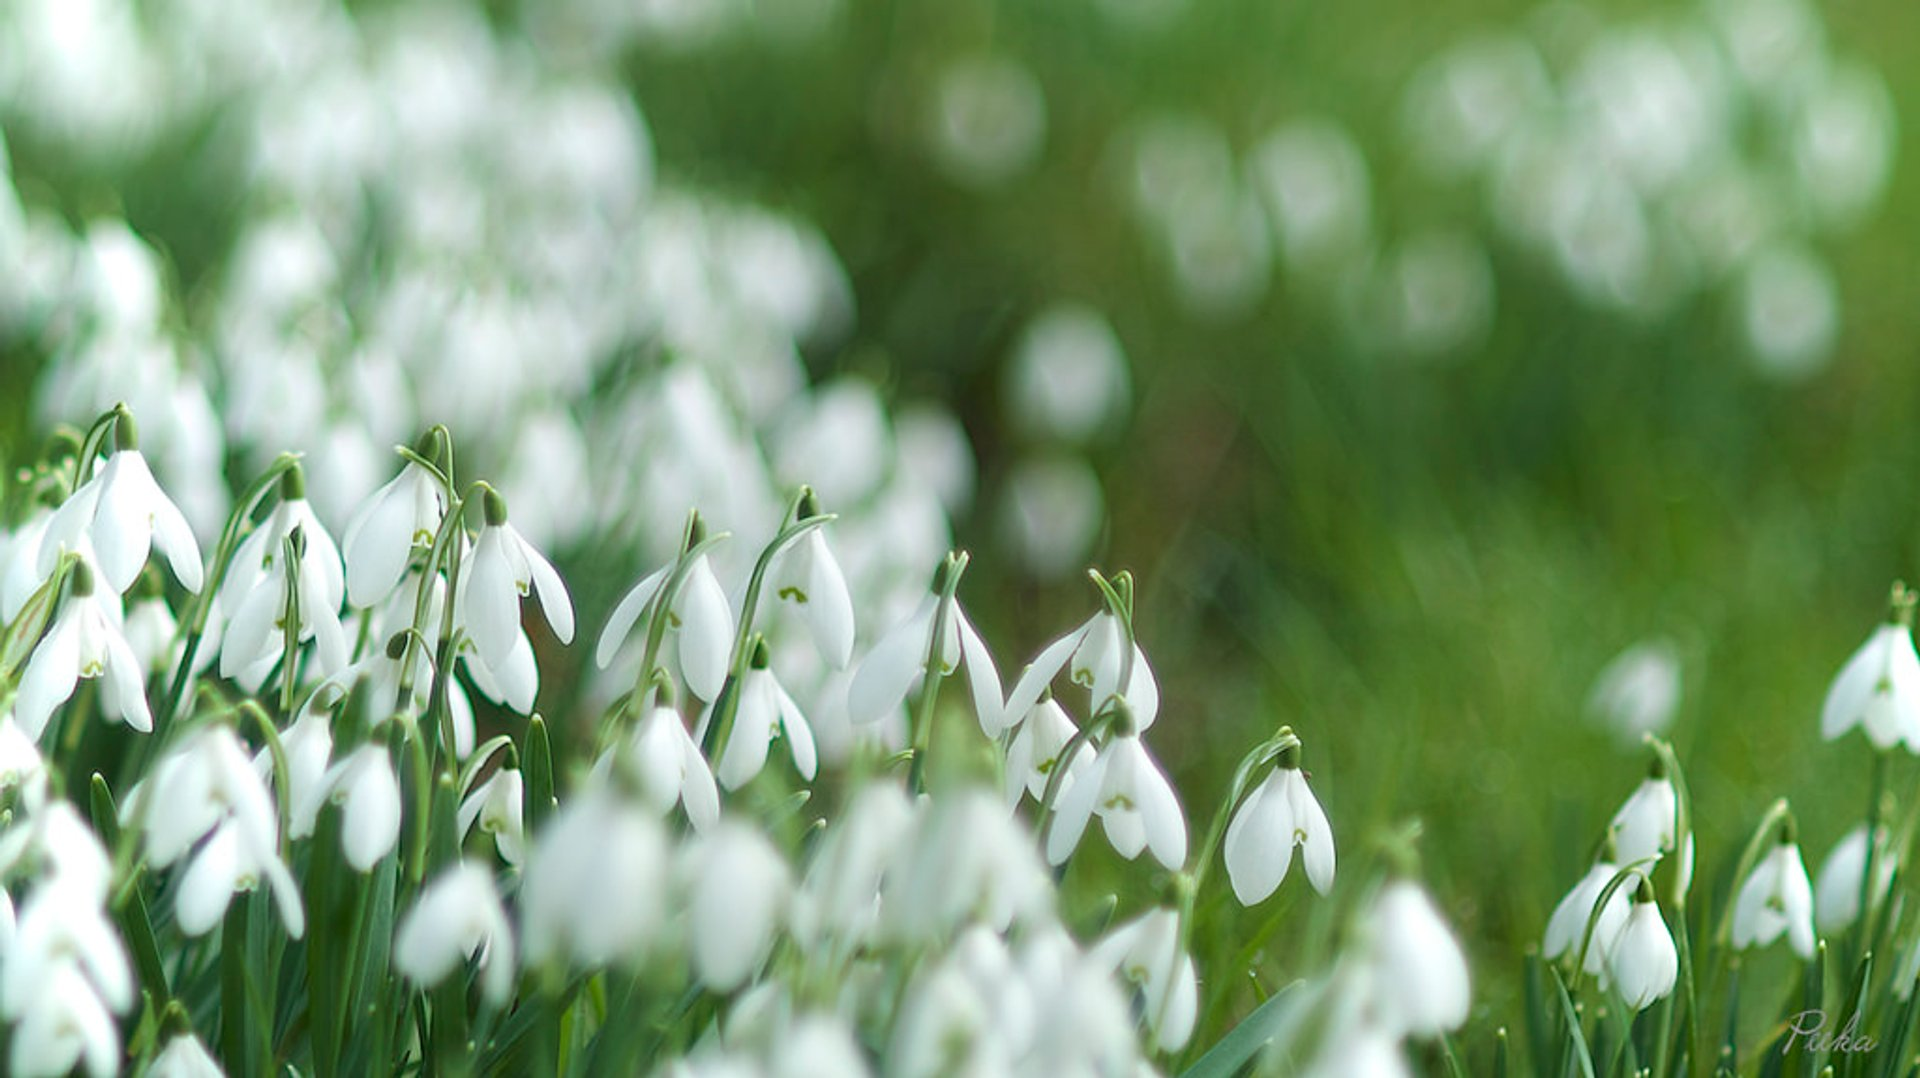 Snowdrops in Bloom in Wales 2019 - Best Time